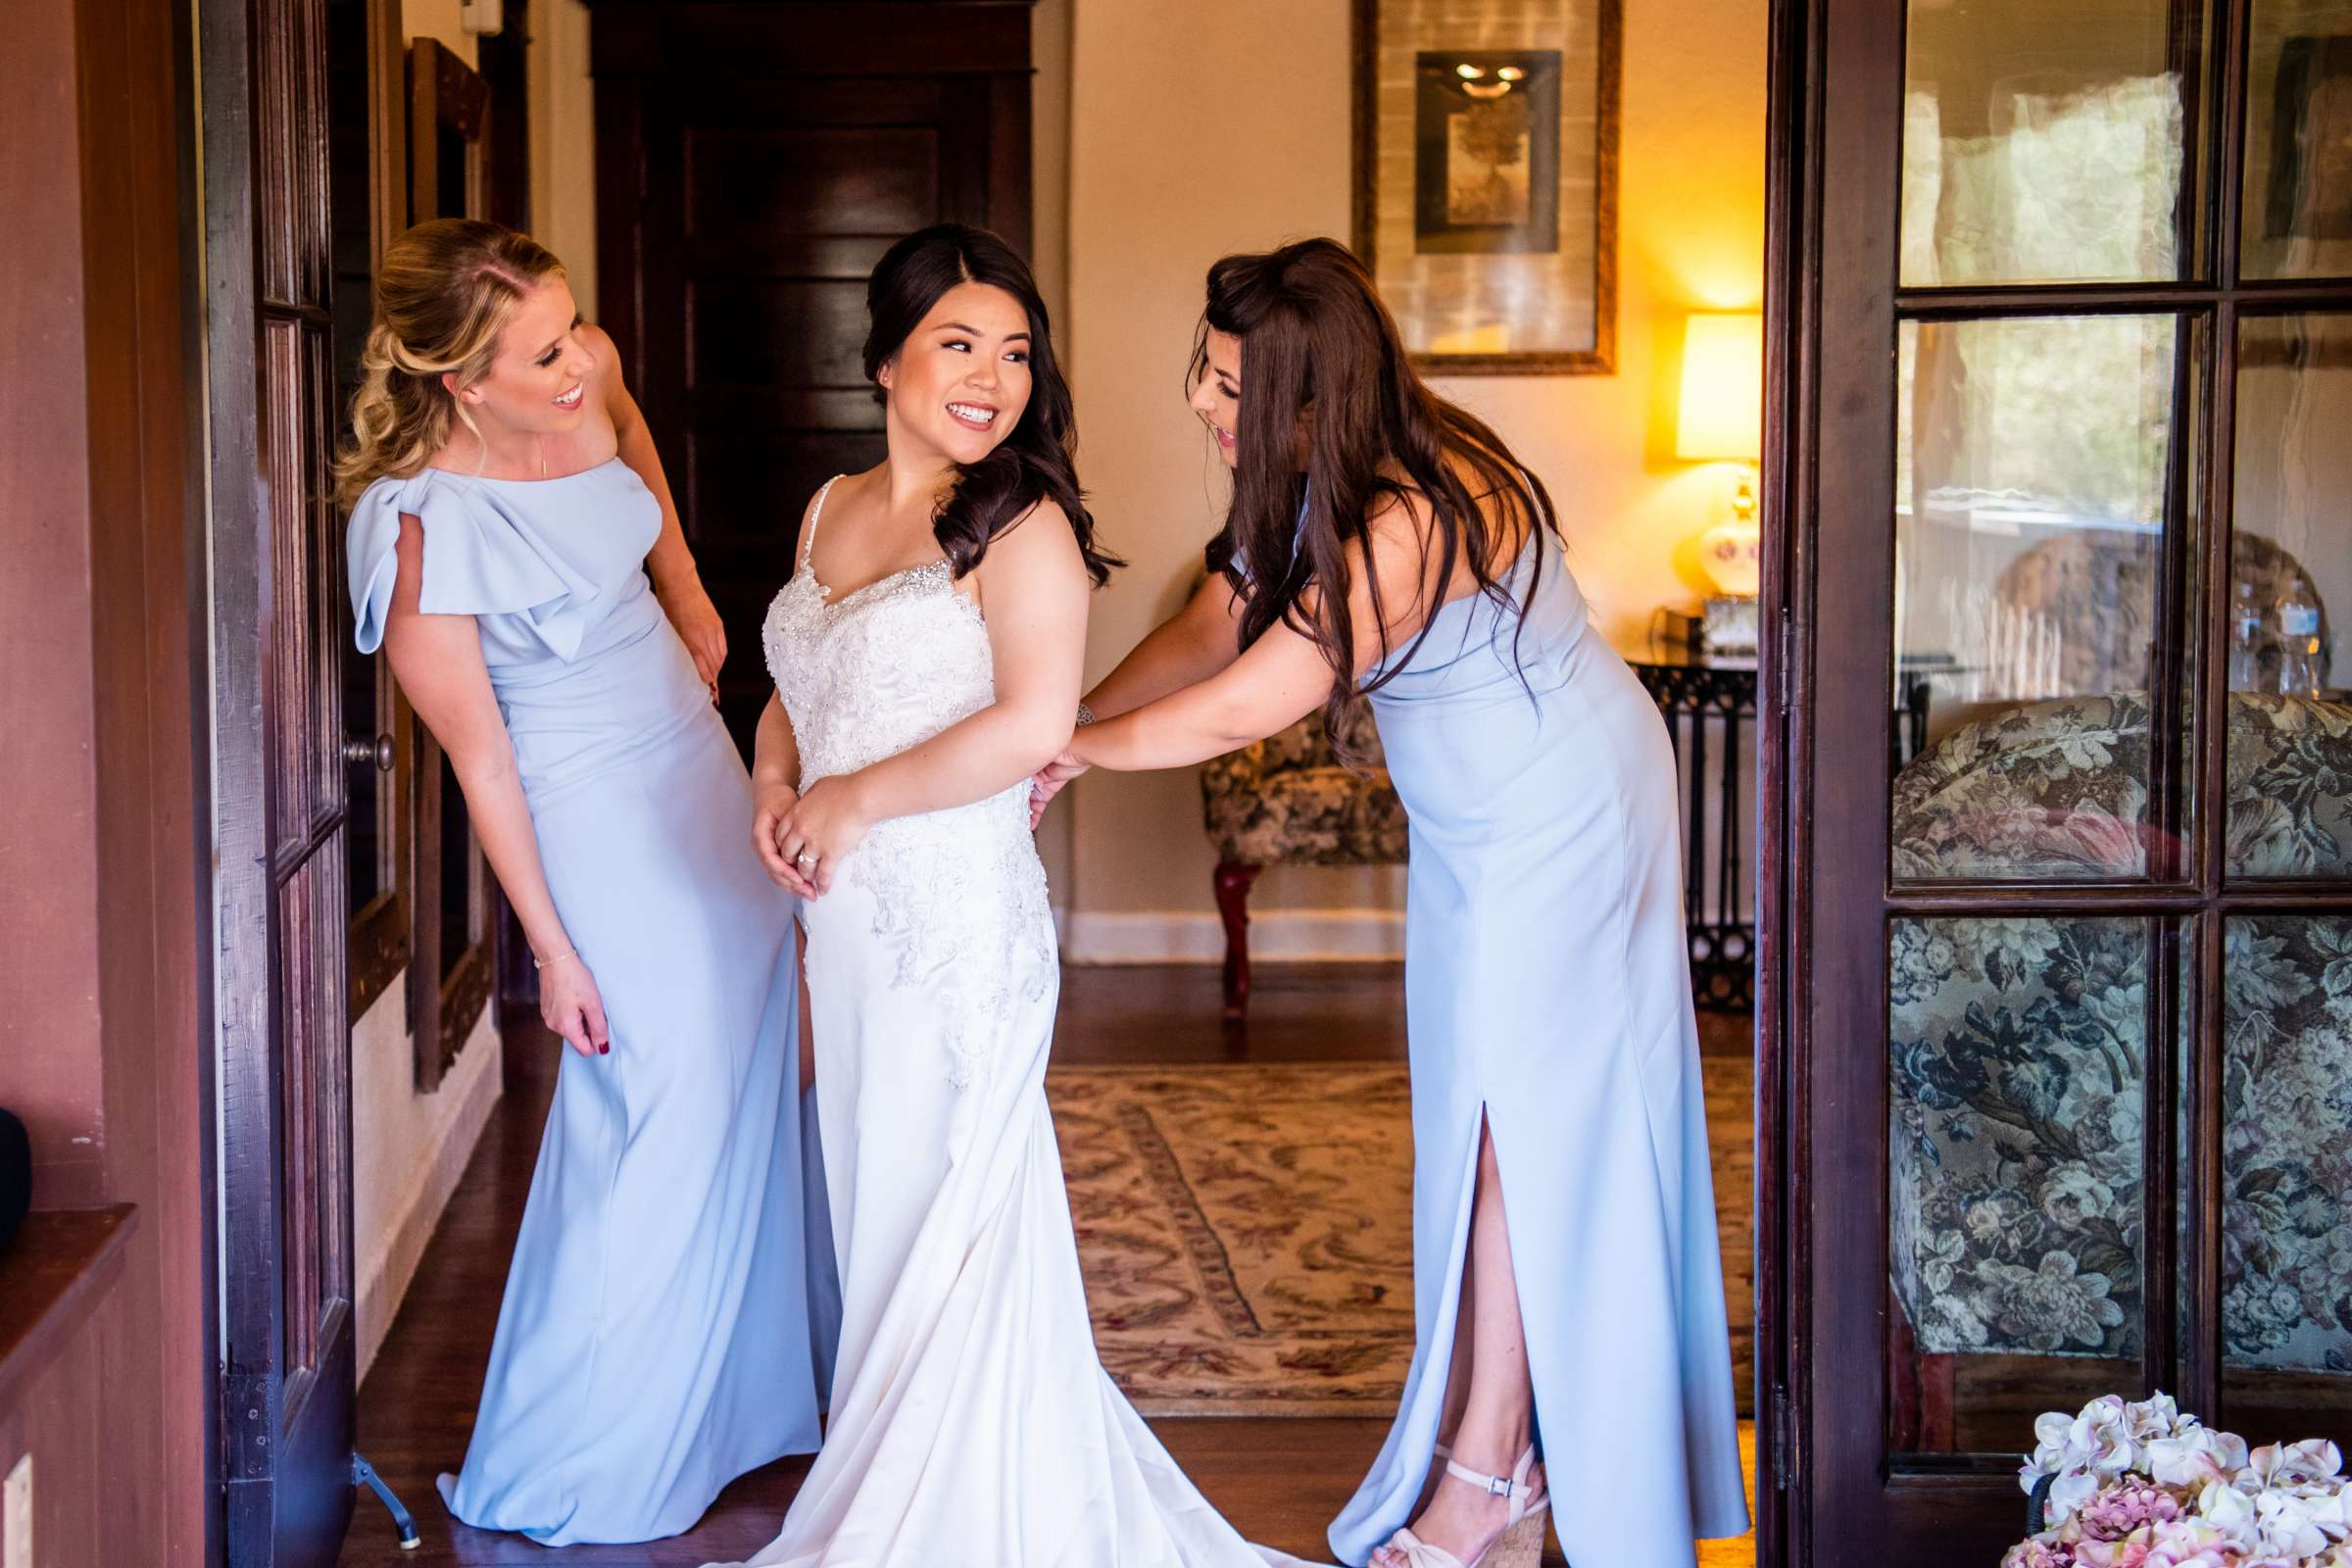 Mt Woodson Castle Wedding coordinated by I Do Weddings, Aya and Jared Wedding Photo #486876 by True Photography